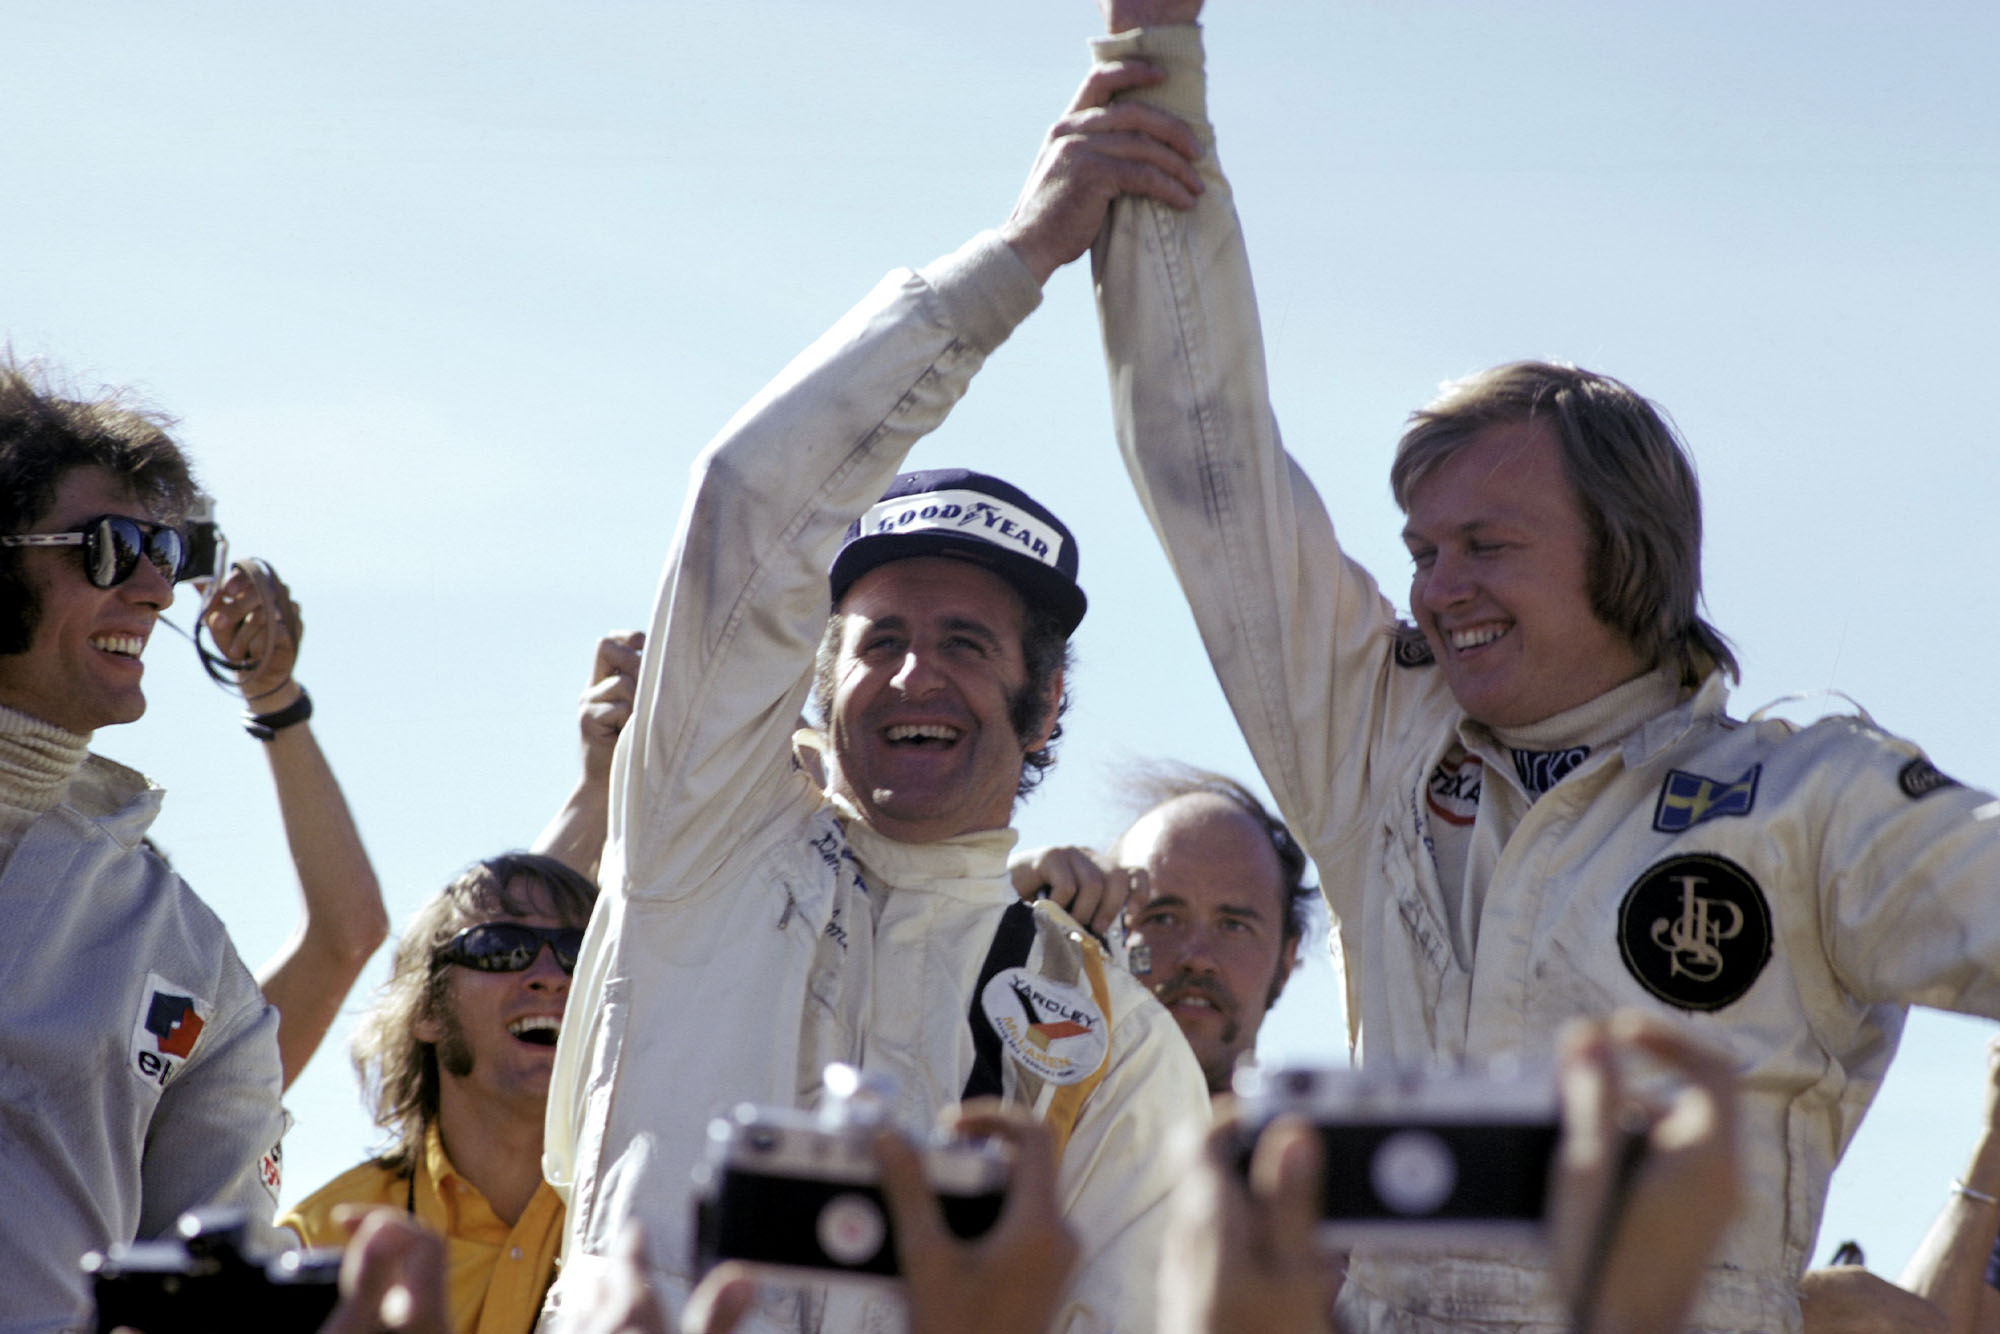 Denny Hulme (McLaren) and Ronnie Peterson (Lotus) celebrate on the podium.